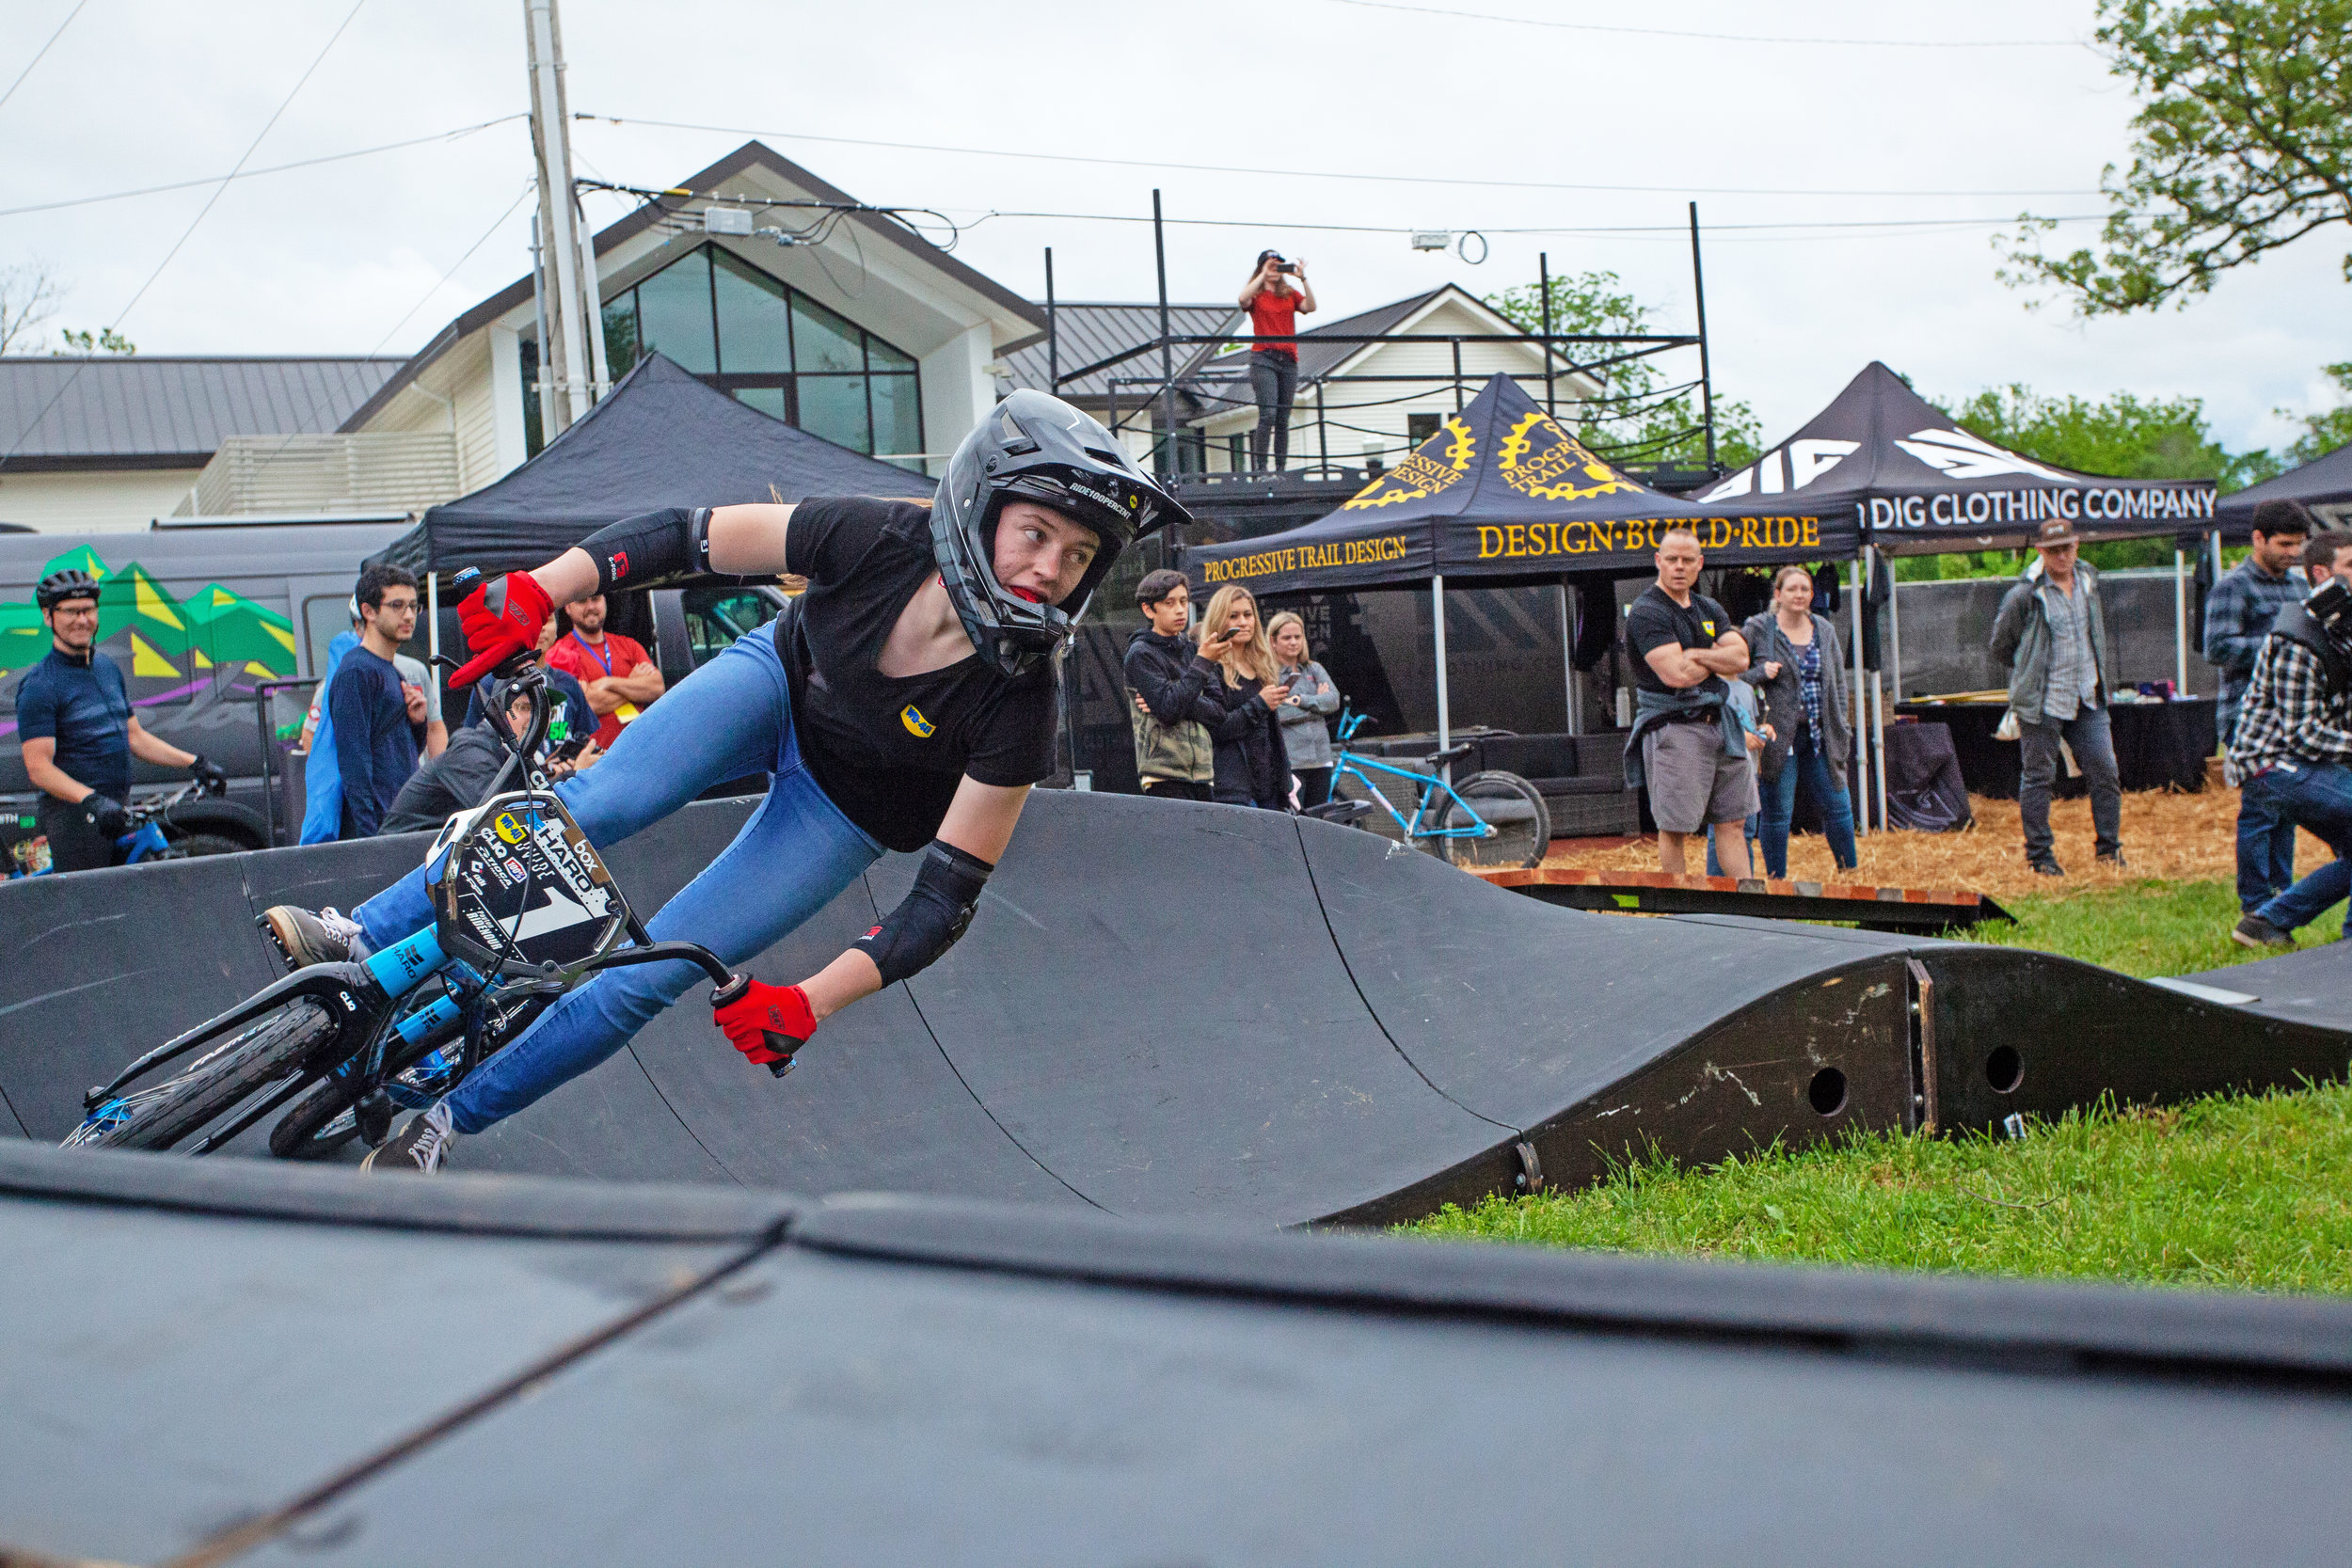 GOING FOR IT: Payton Ridenour, a 16-year-old BMX champion from Pennsylvania, rides a pump track at the Women Shred event held in Bentonville in May.